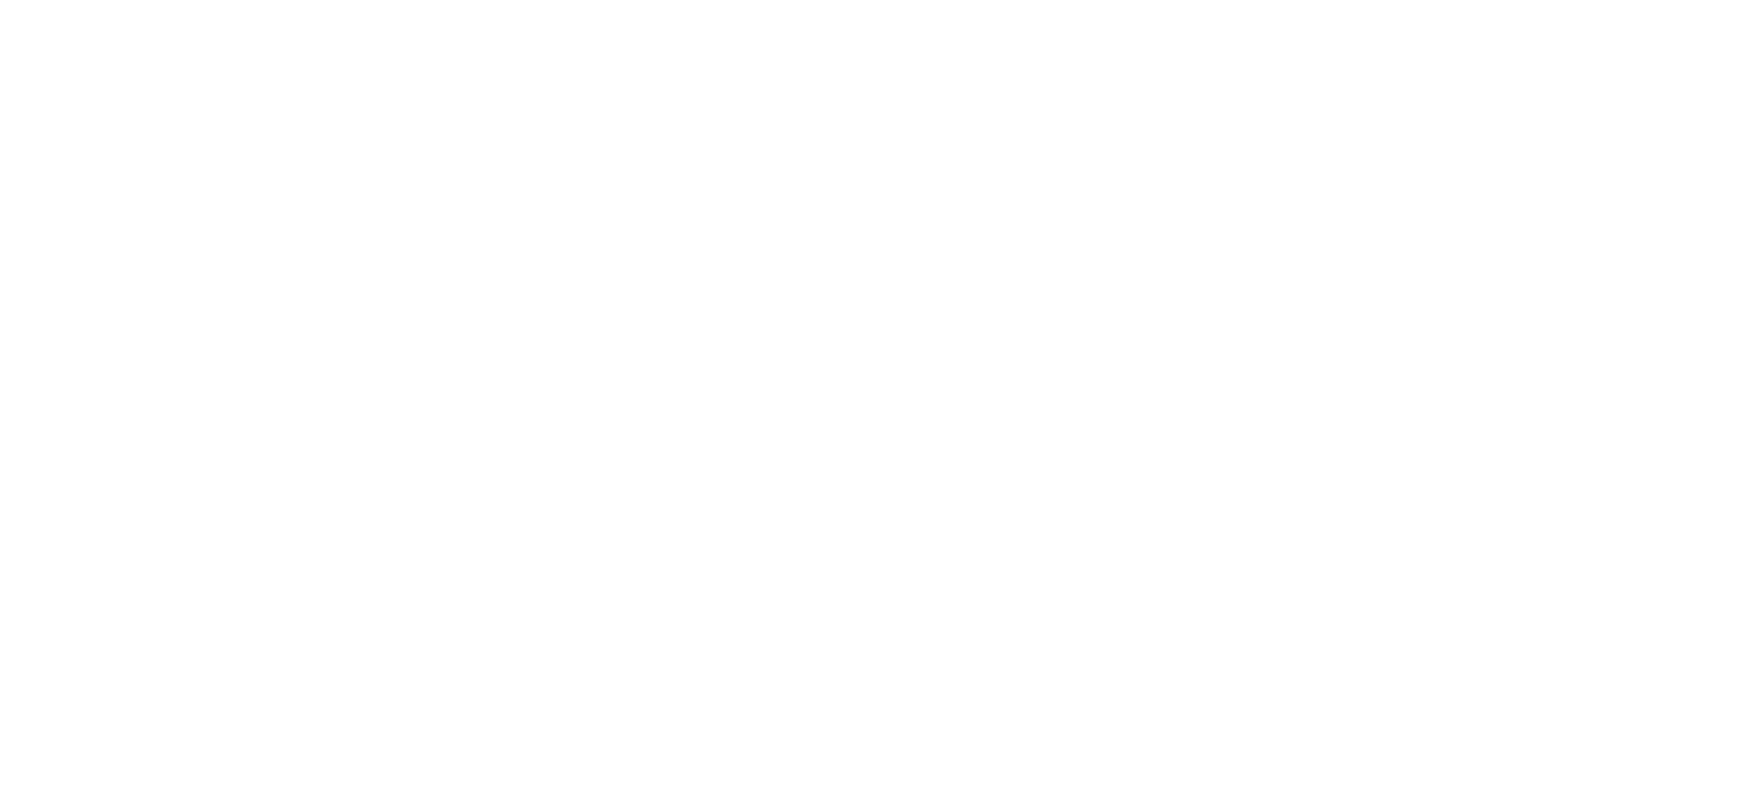 up! Africa